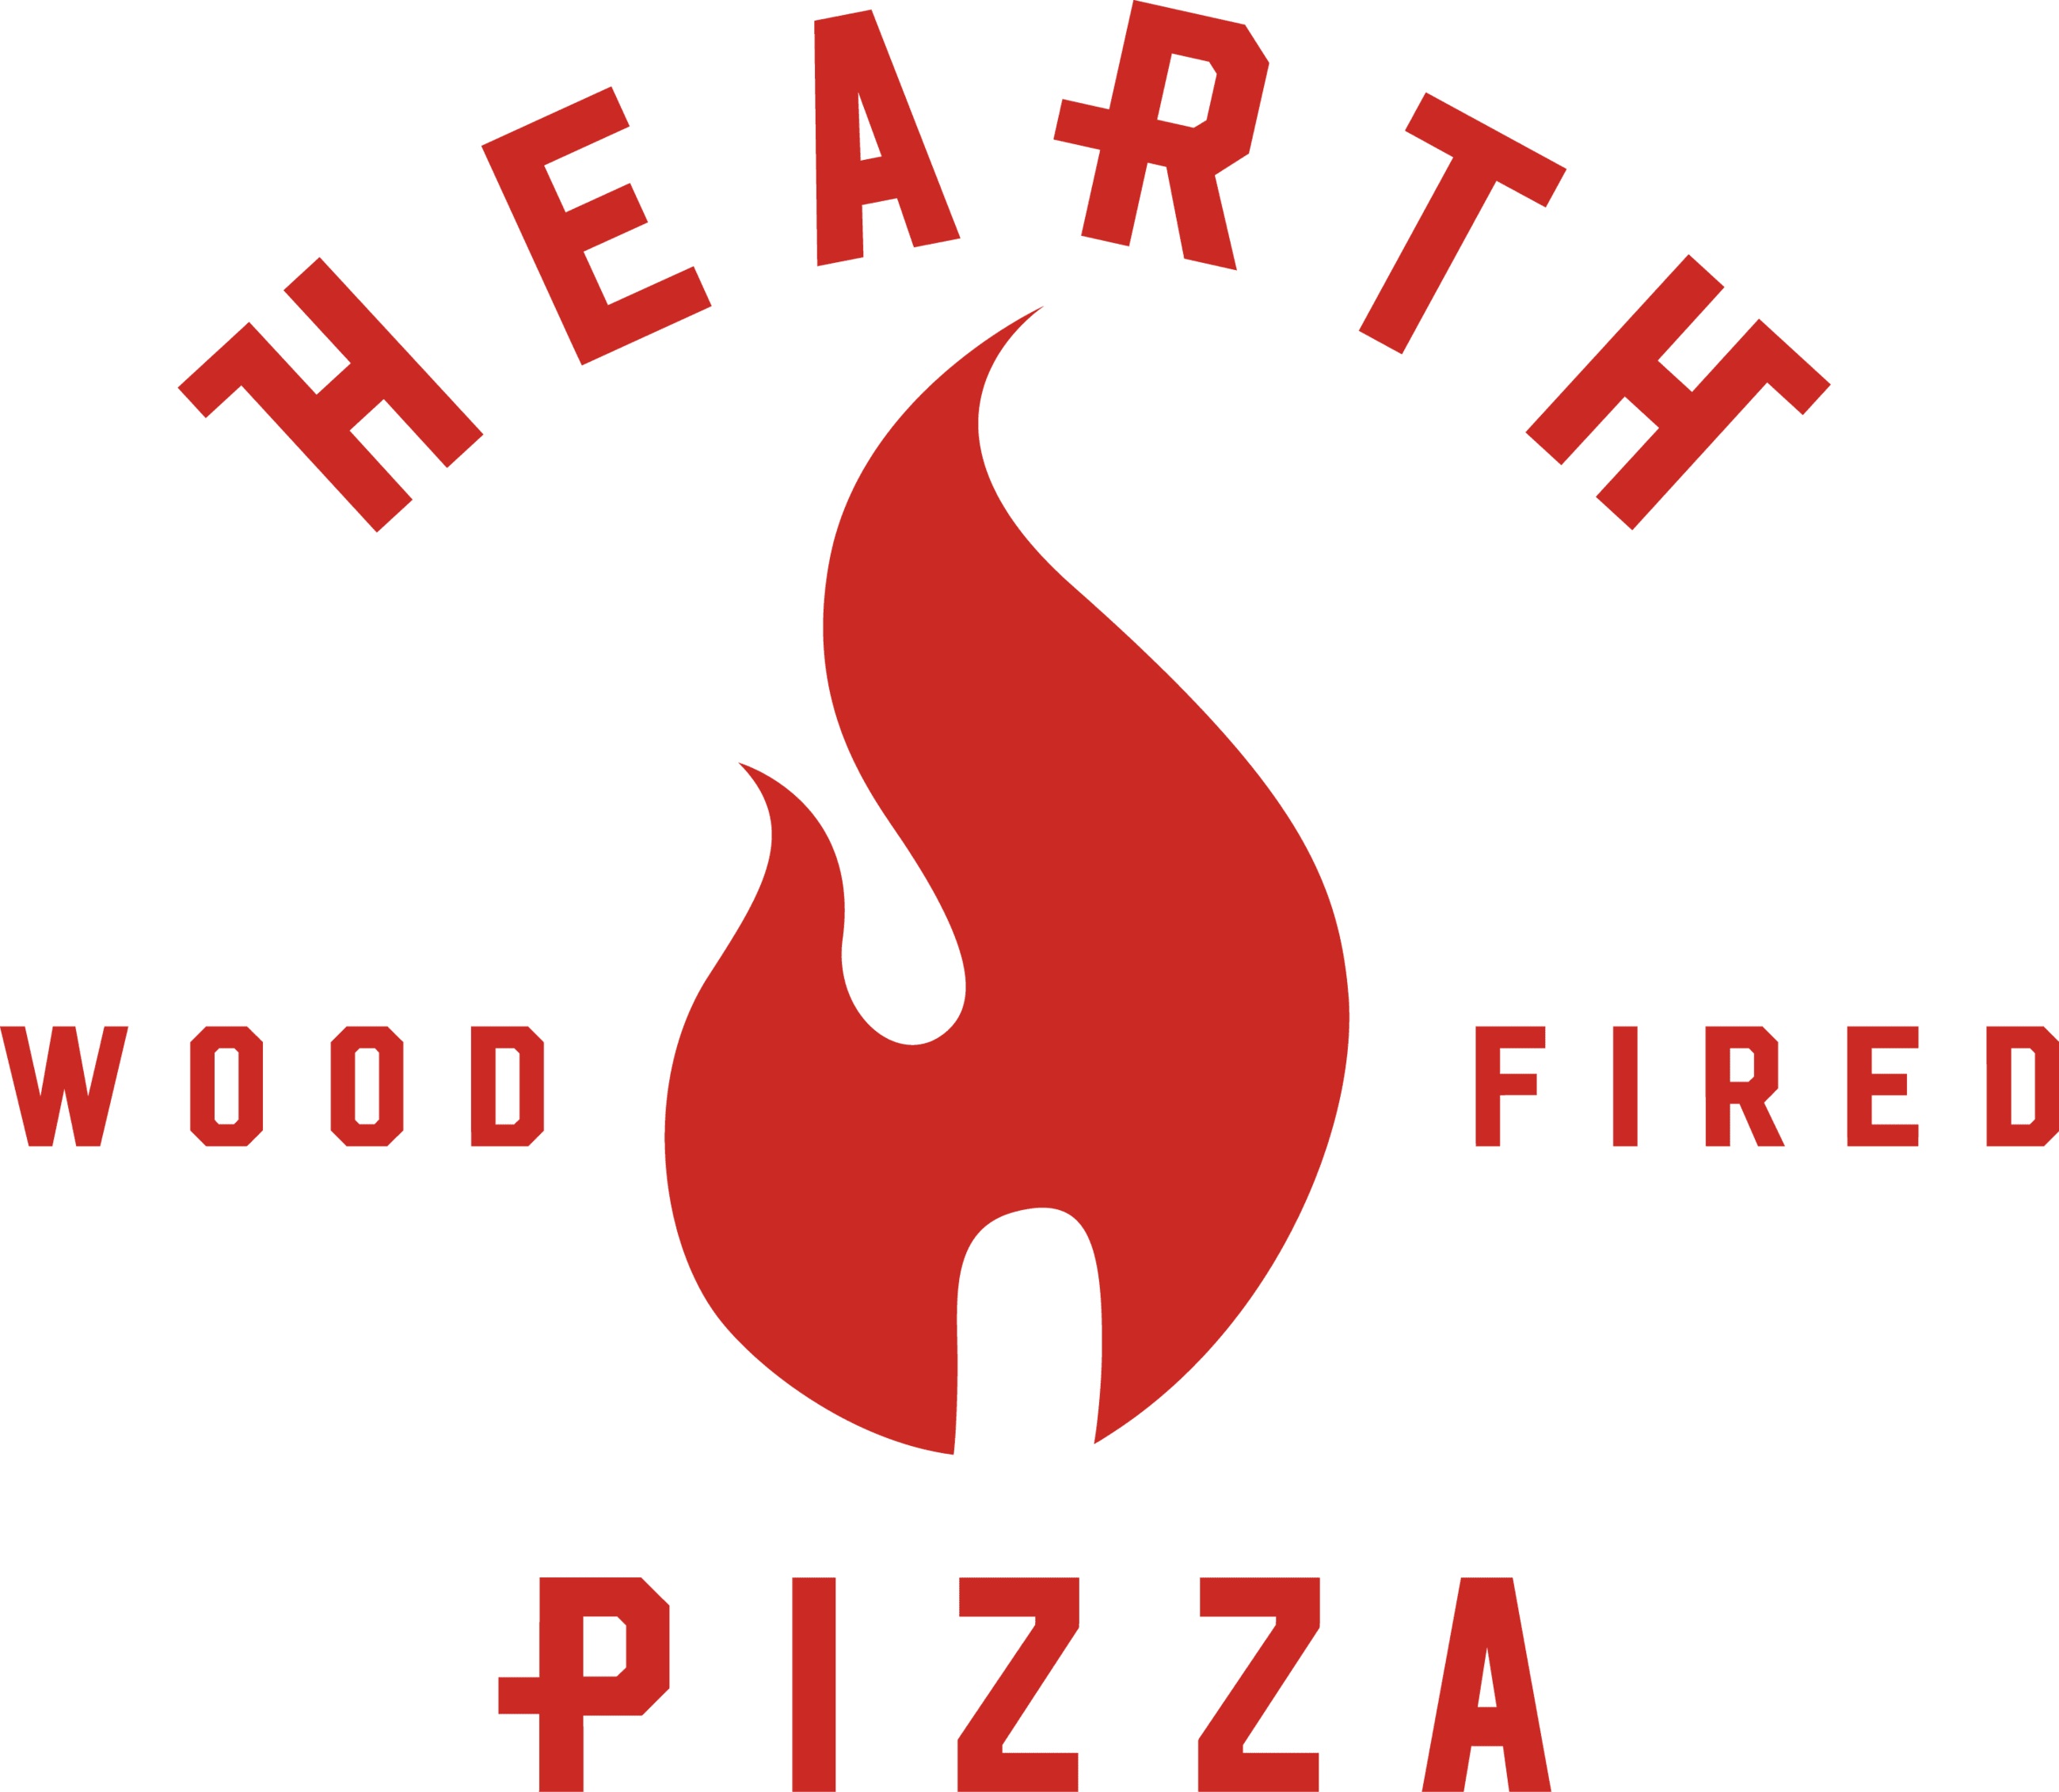 HEARTH-RED Opens in new window